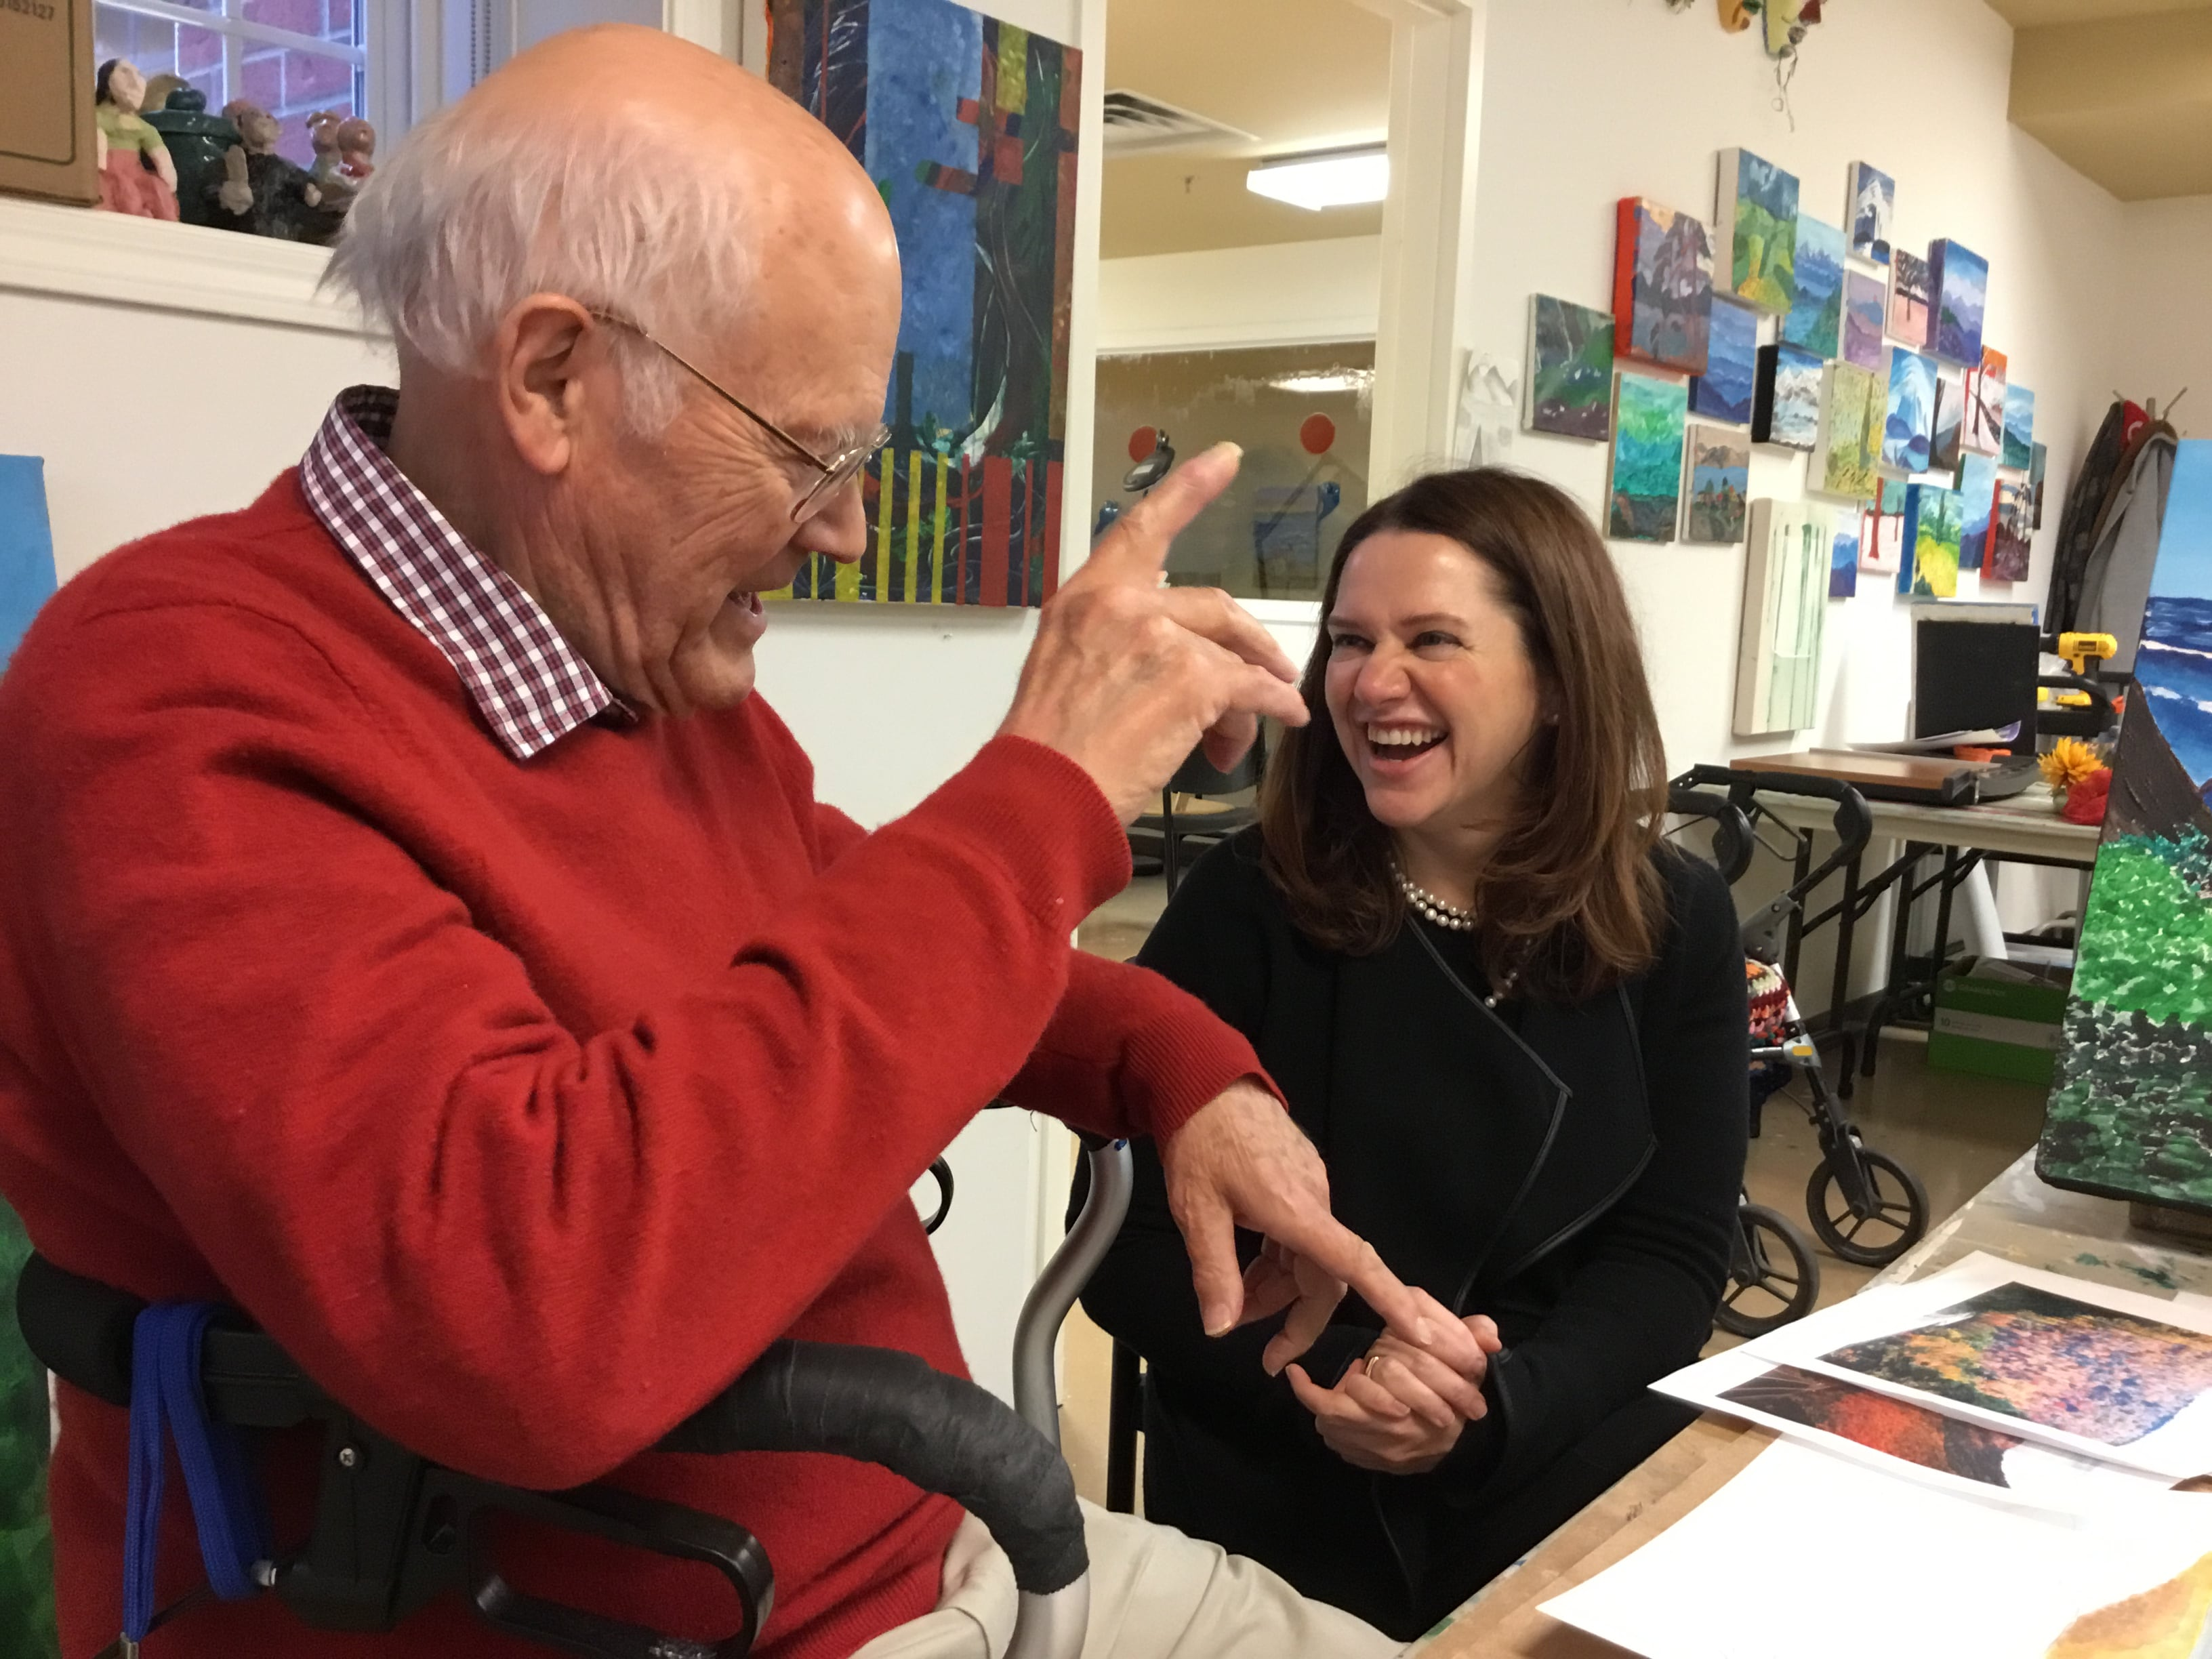 CEO Kim O'Brien shares a laugh with resident Jim Dolph